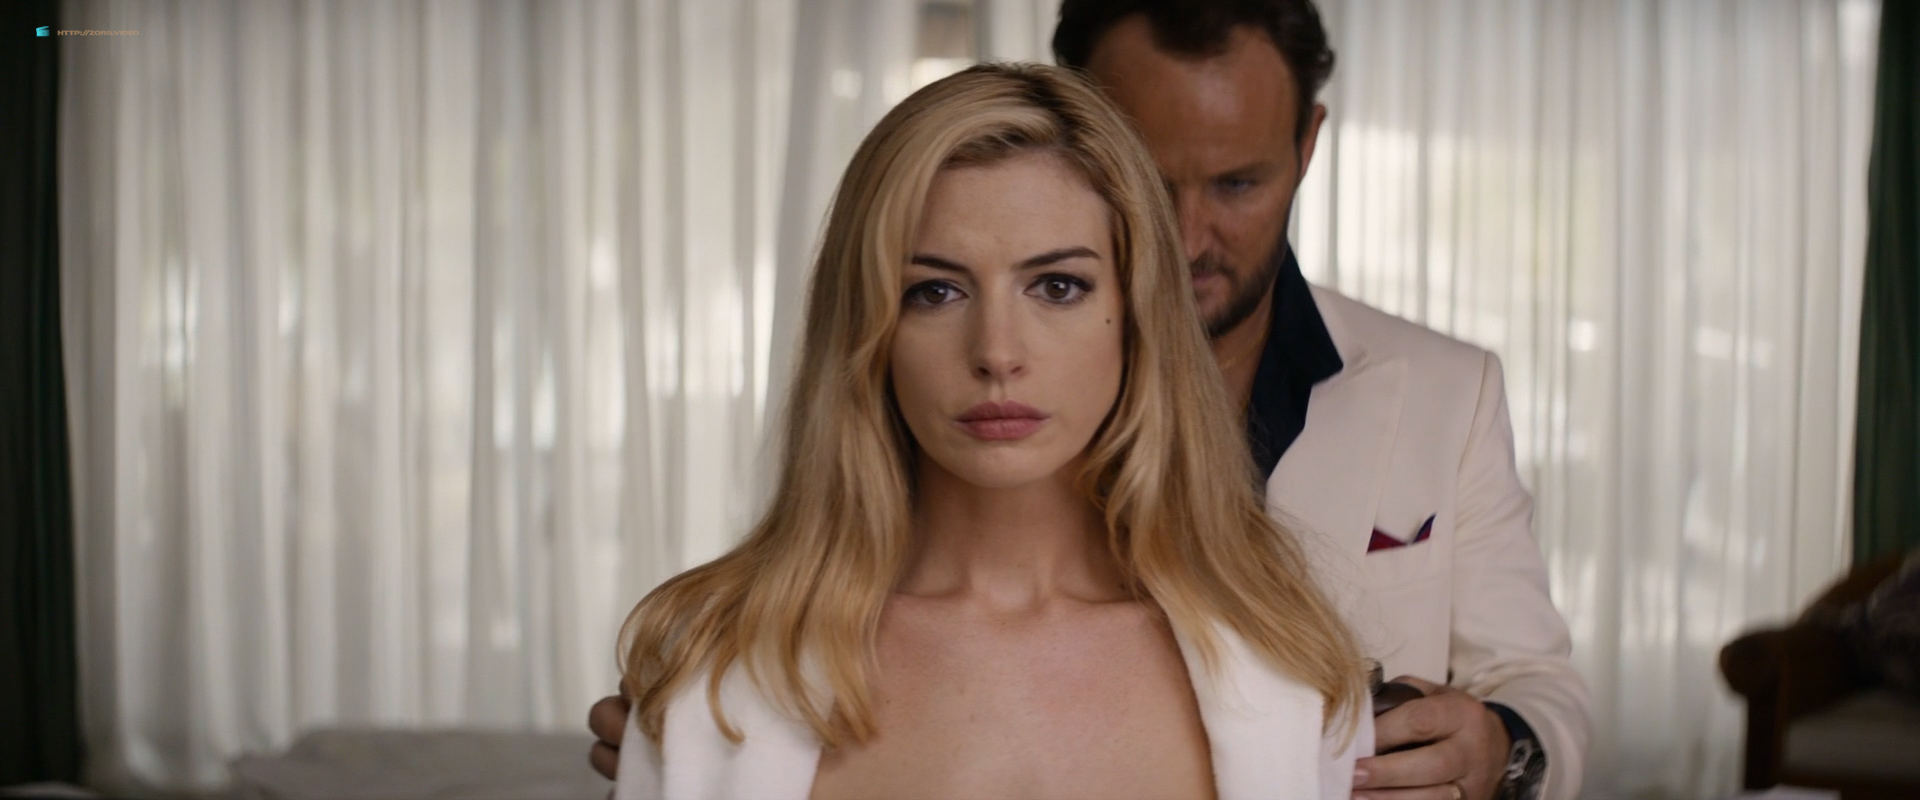 Anne Hathaway hot in sex scene - Serenity (2019) HD 1080p BluRay (15)